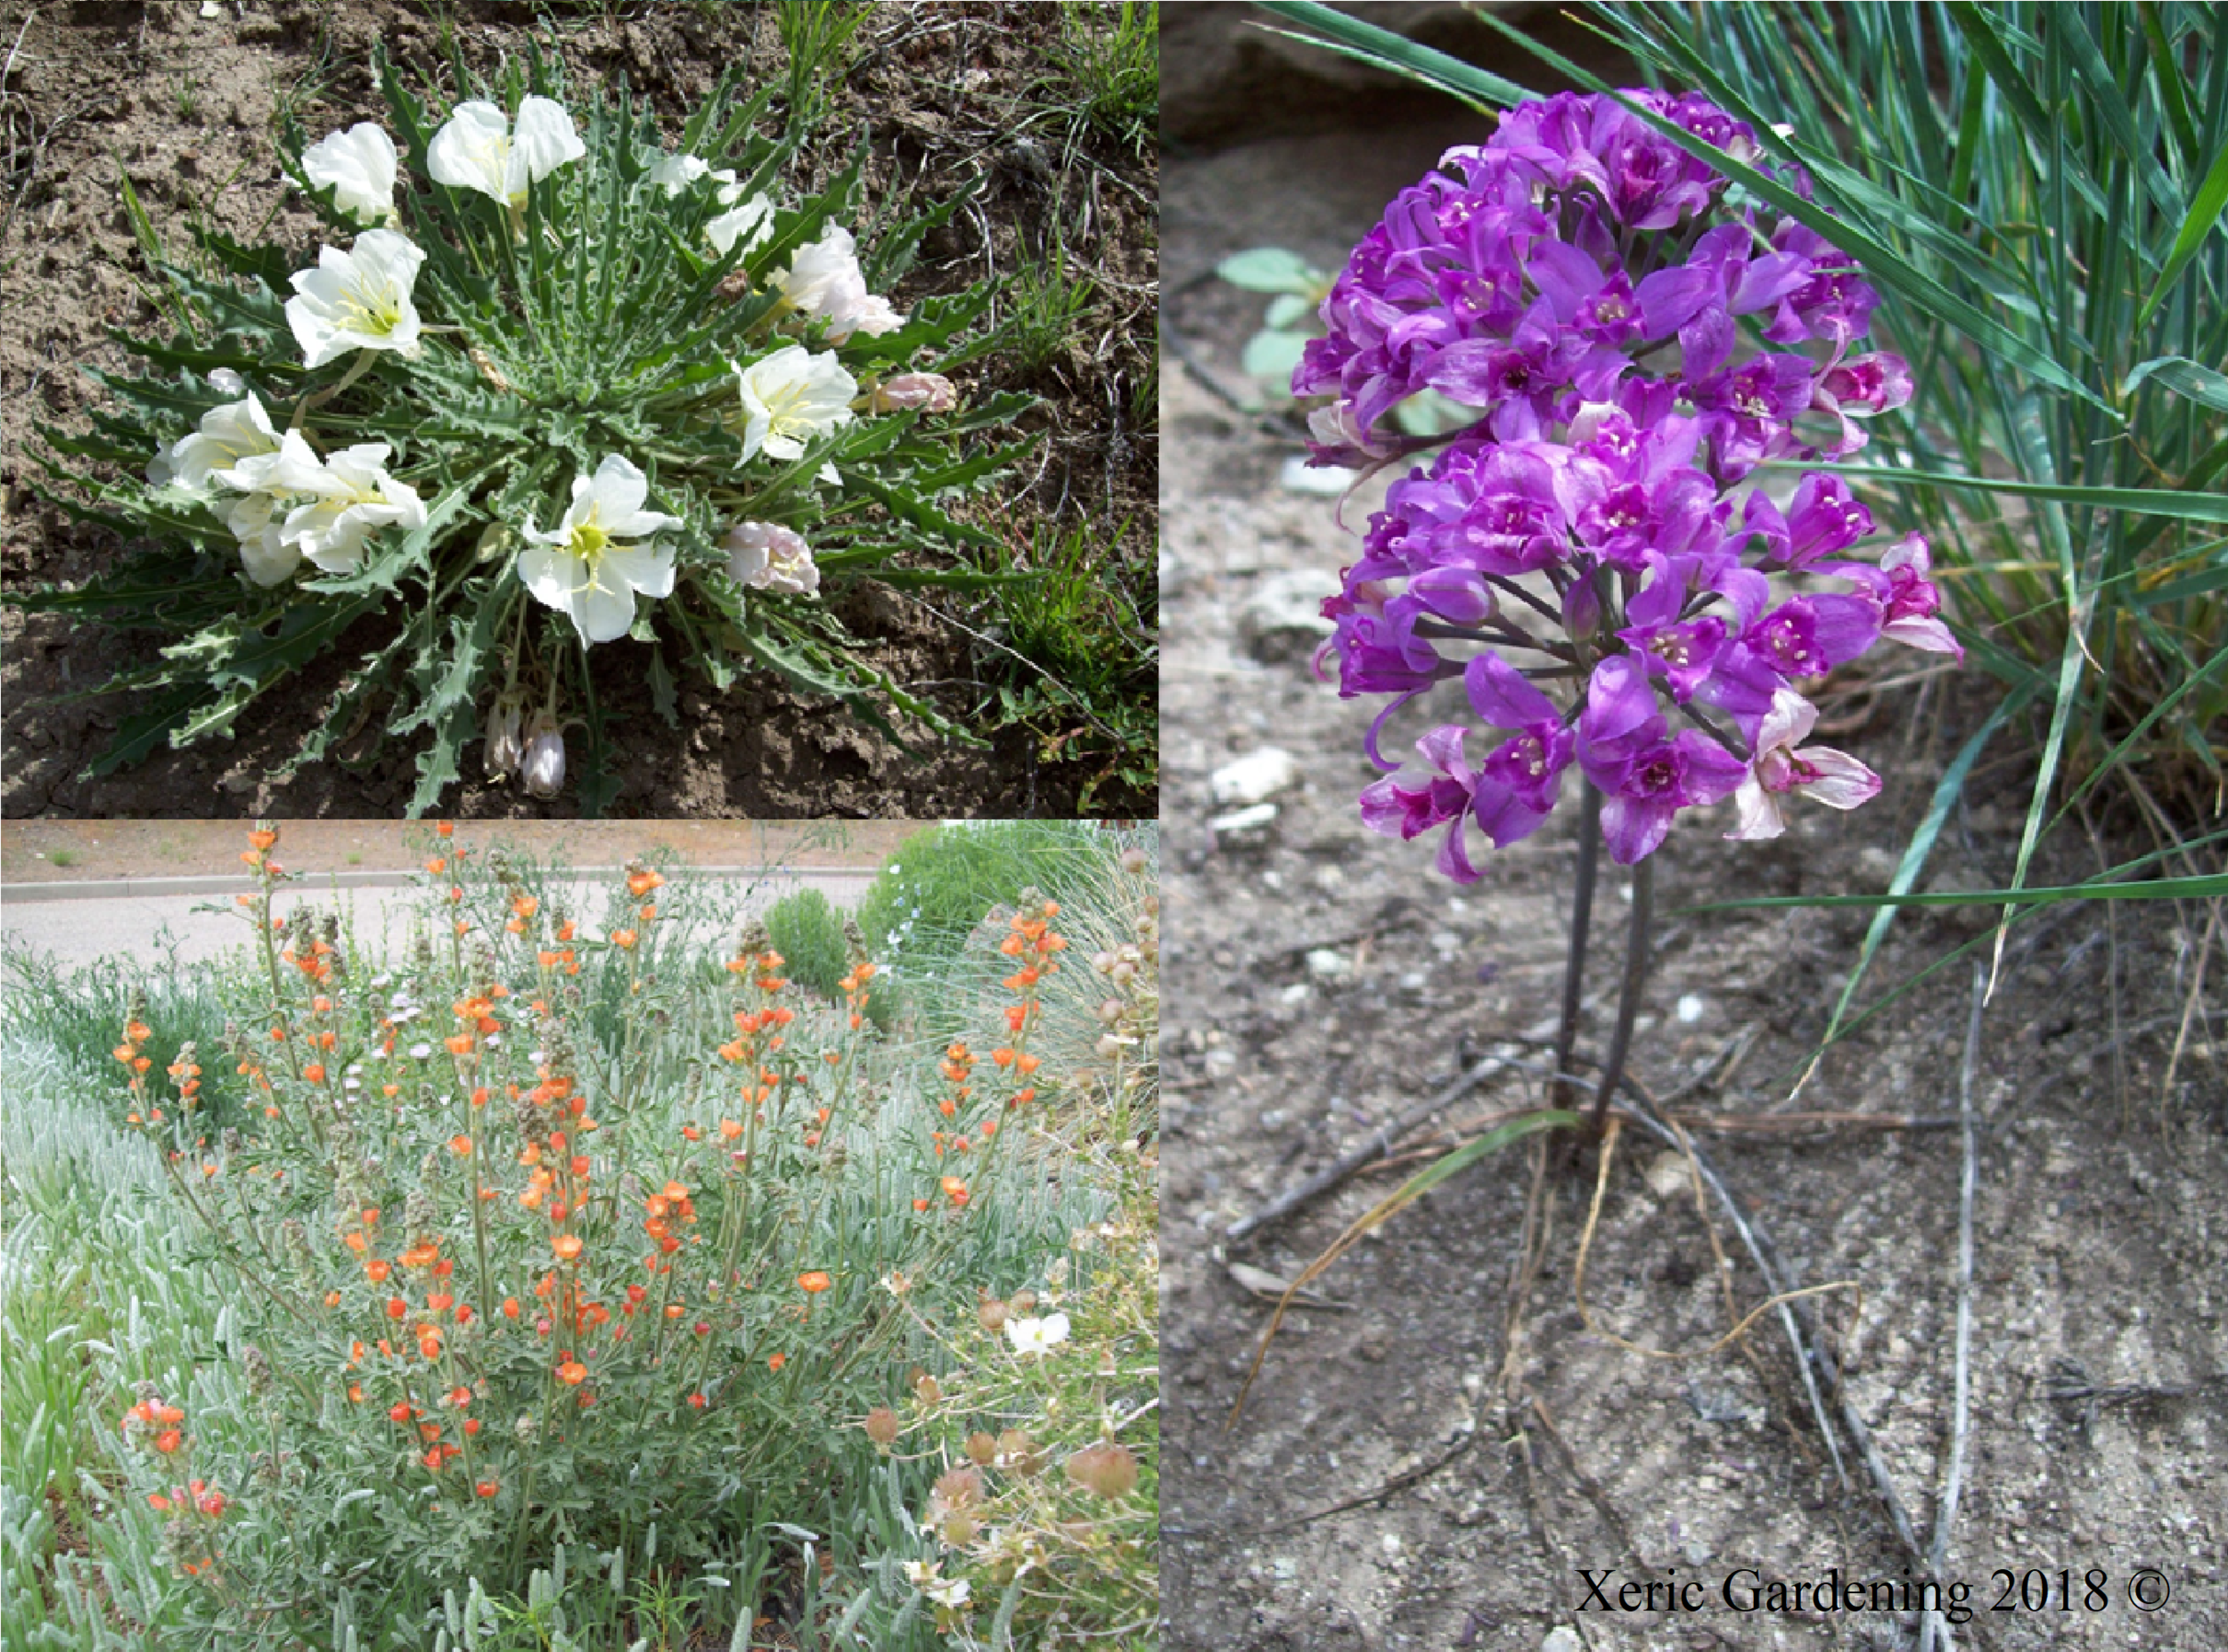 Ecological projects - We have recently started to pair with different organizations to promote pollinator gardens, student native plant projects, and the rehabilitation/restoration of the foothills.